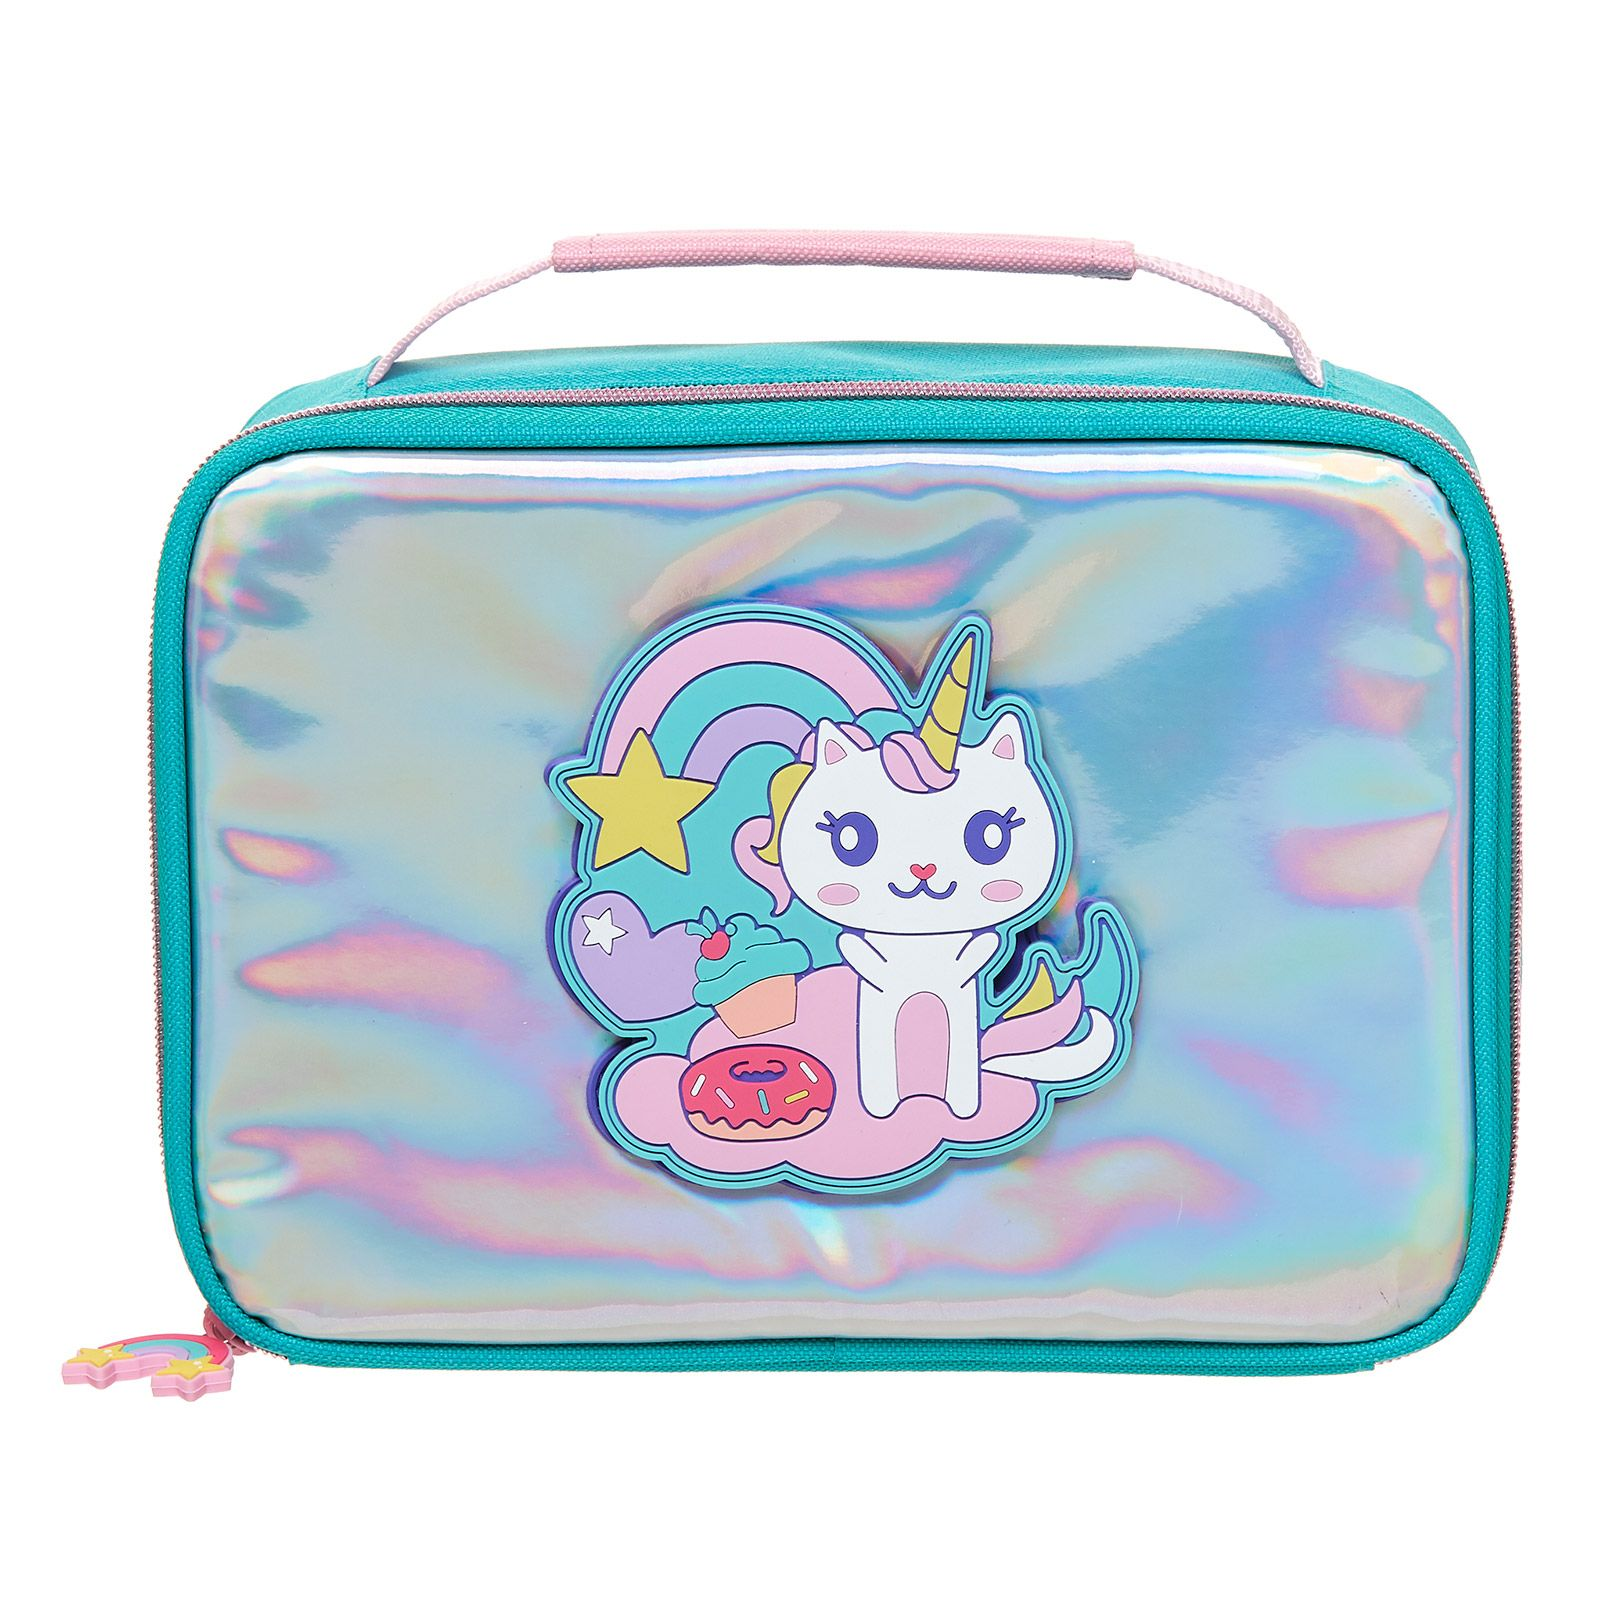 Shimmy Shake Square Lunchbox  11a6d30fbc66a